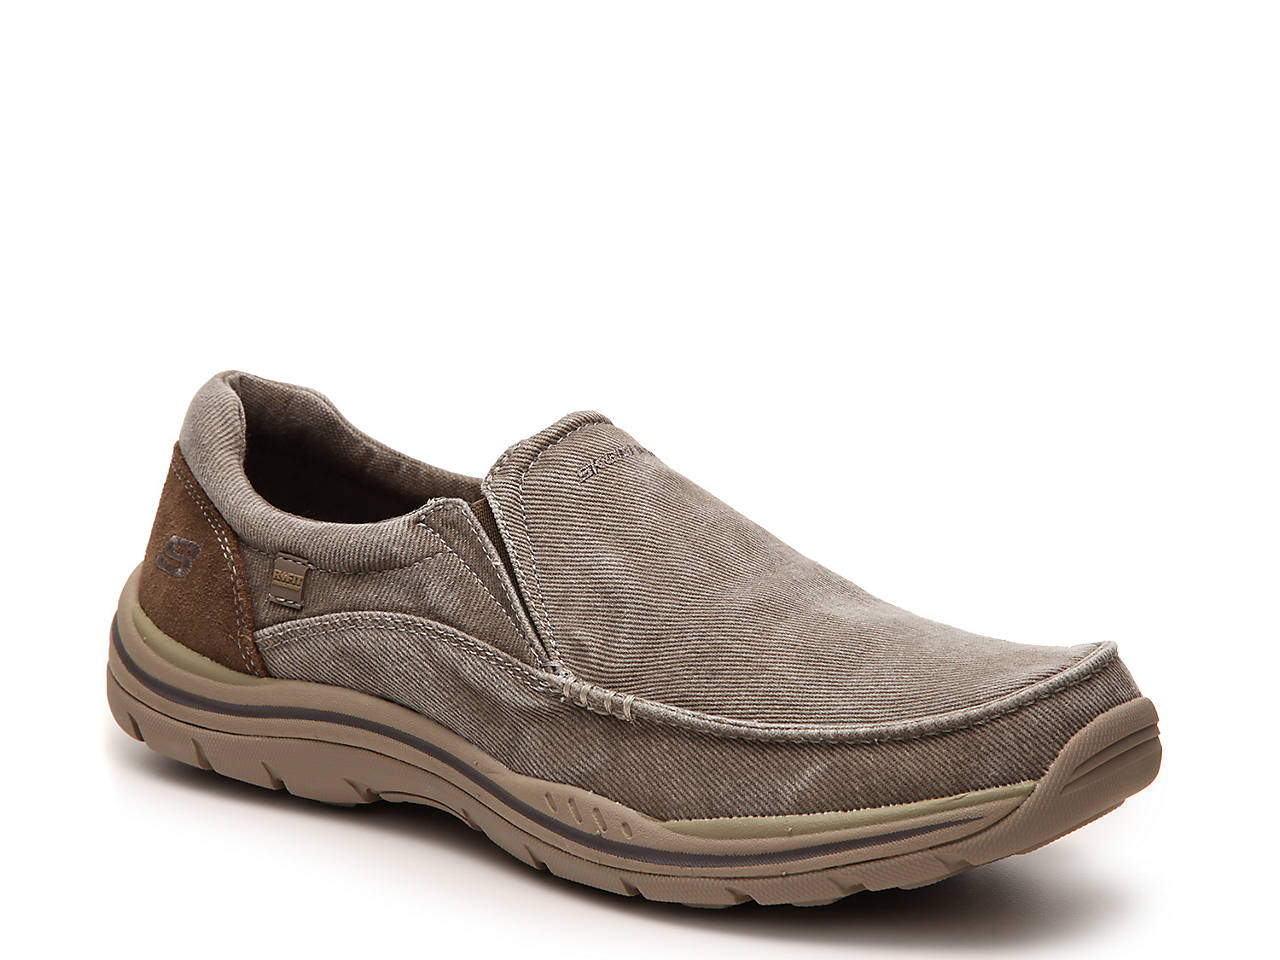 34ee2ae5014e1 Skechers Relaxed Fit Avillo Slip-On Men's Shoes | DSW